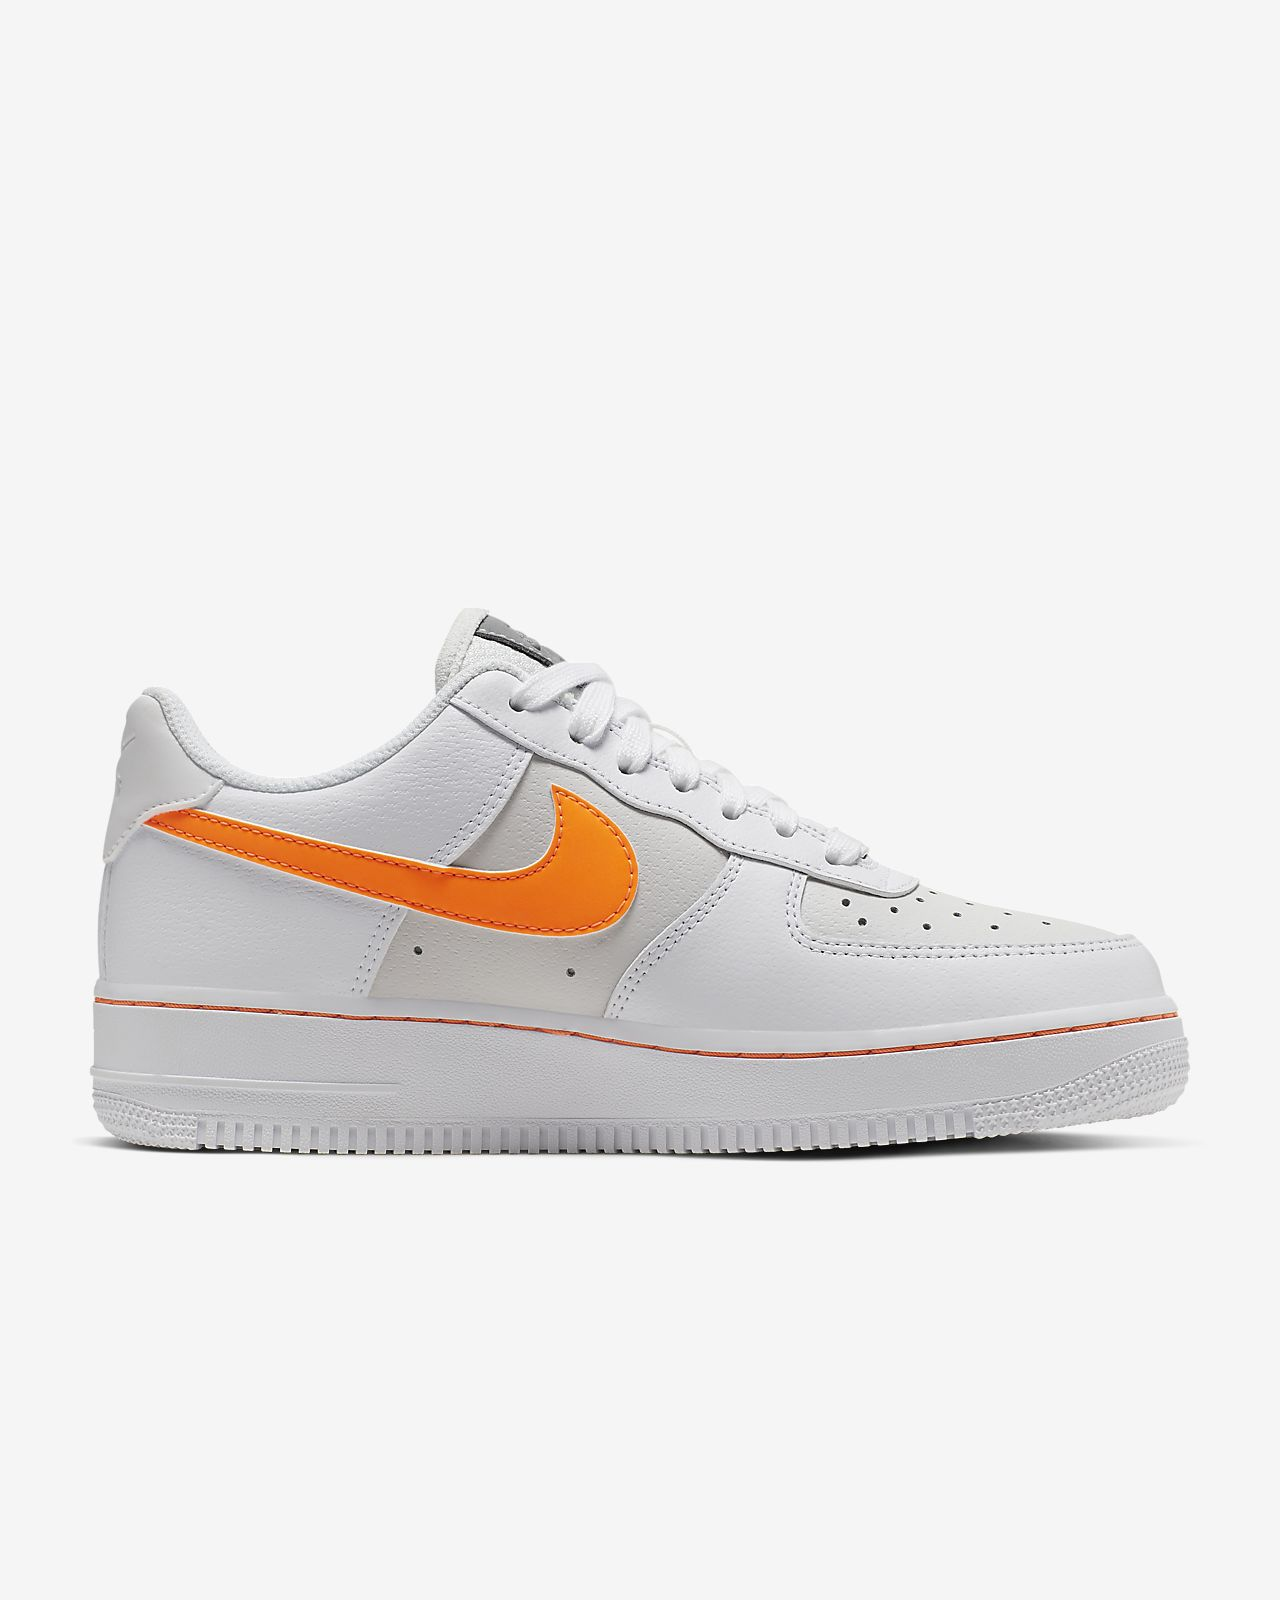 tout neuf 4787a a233a Chaussure Nike Air Force 1 Low pour Femme